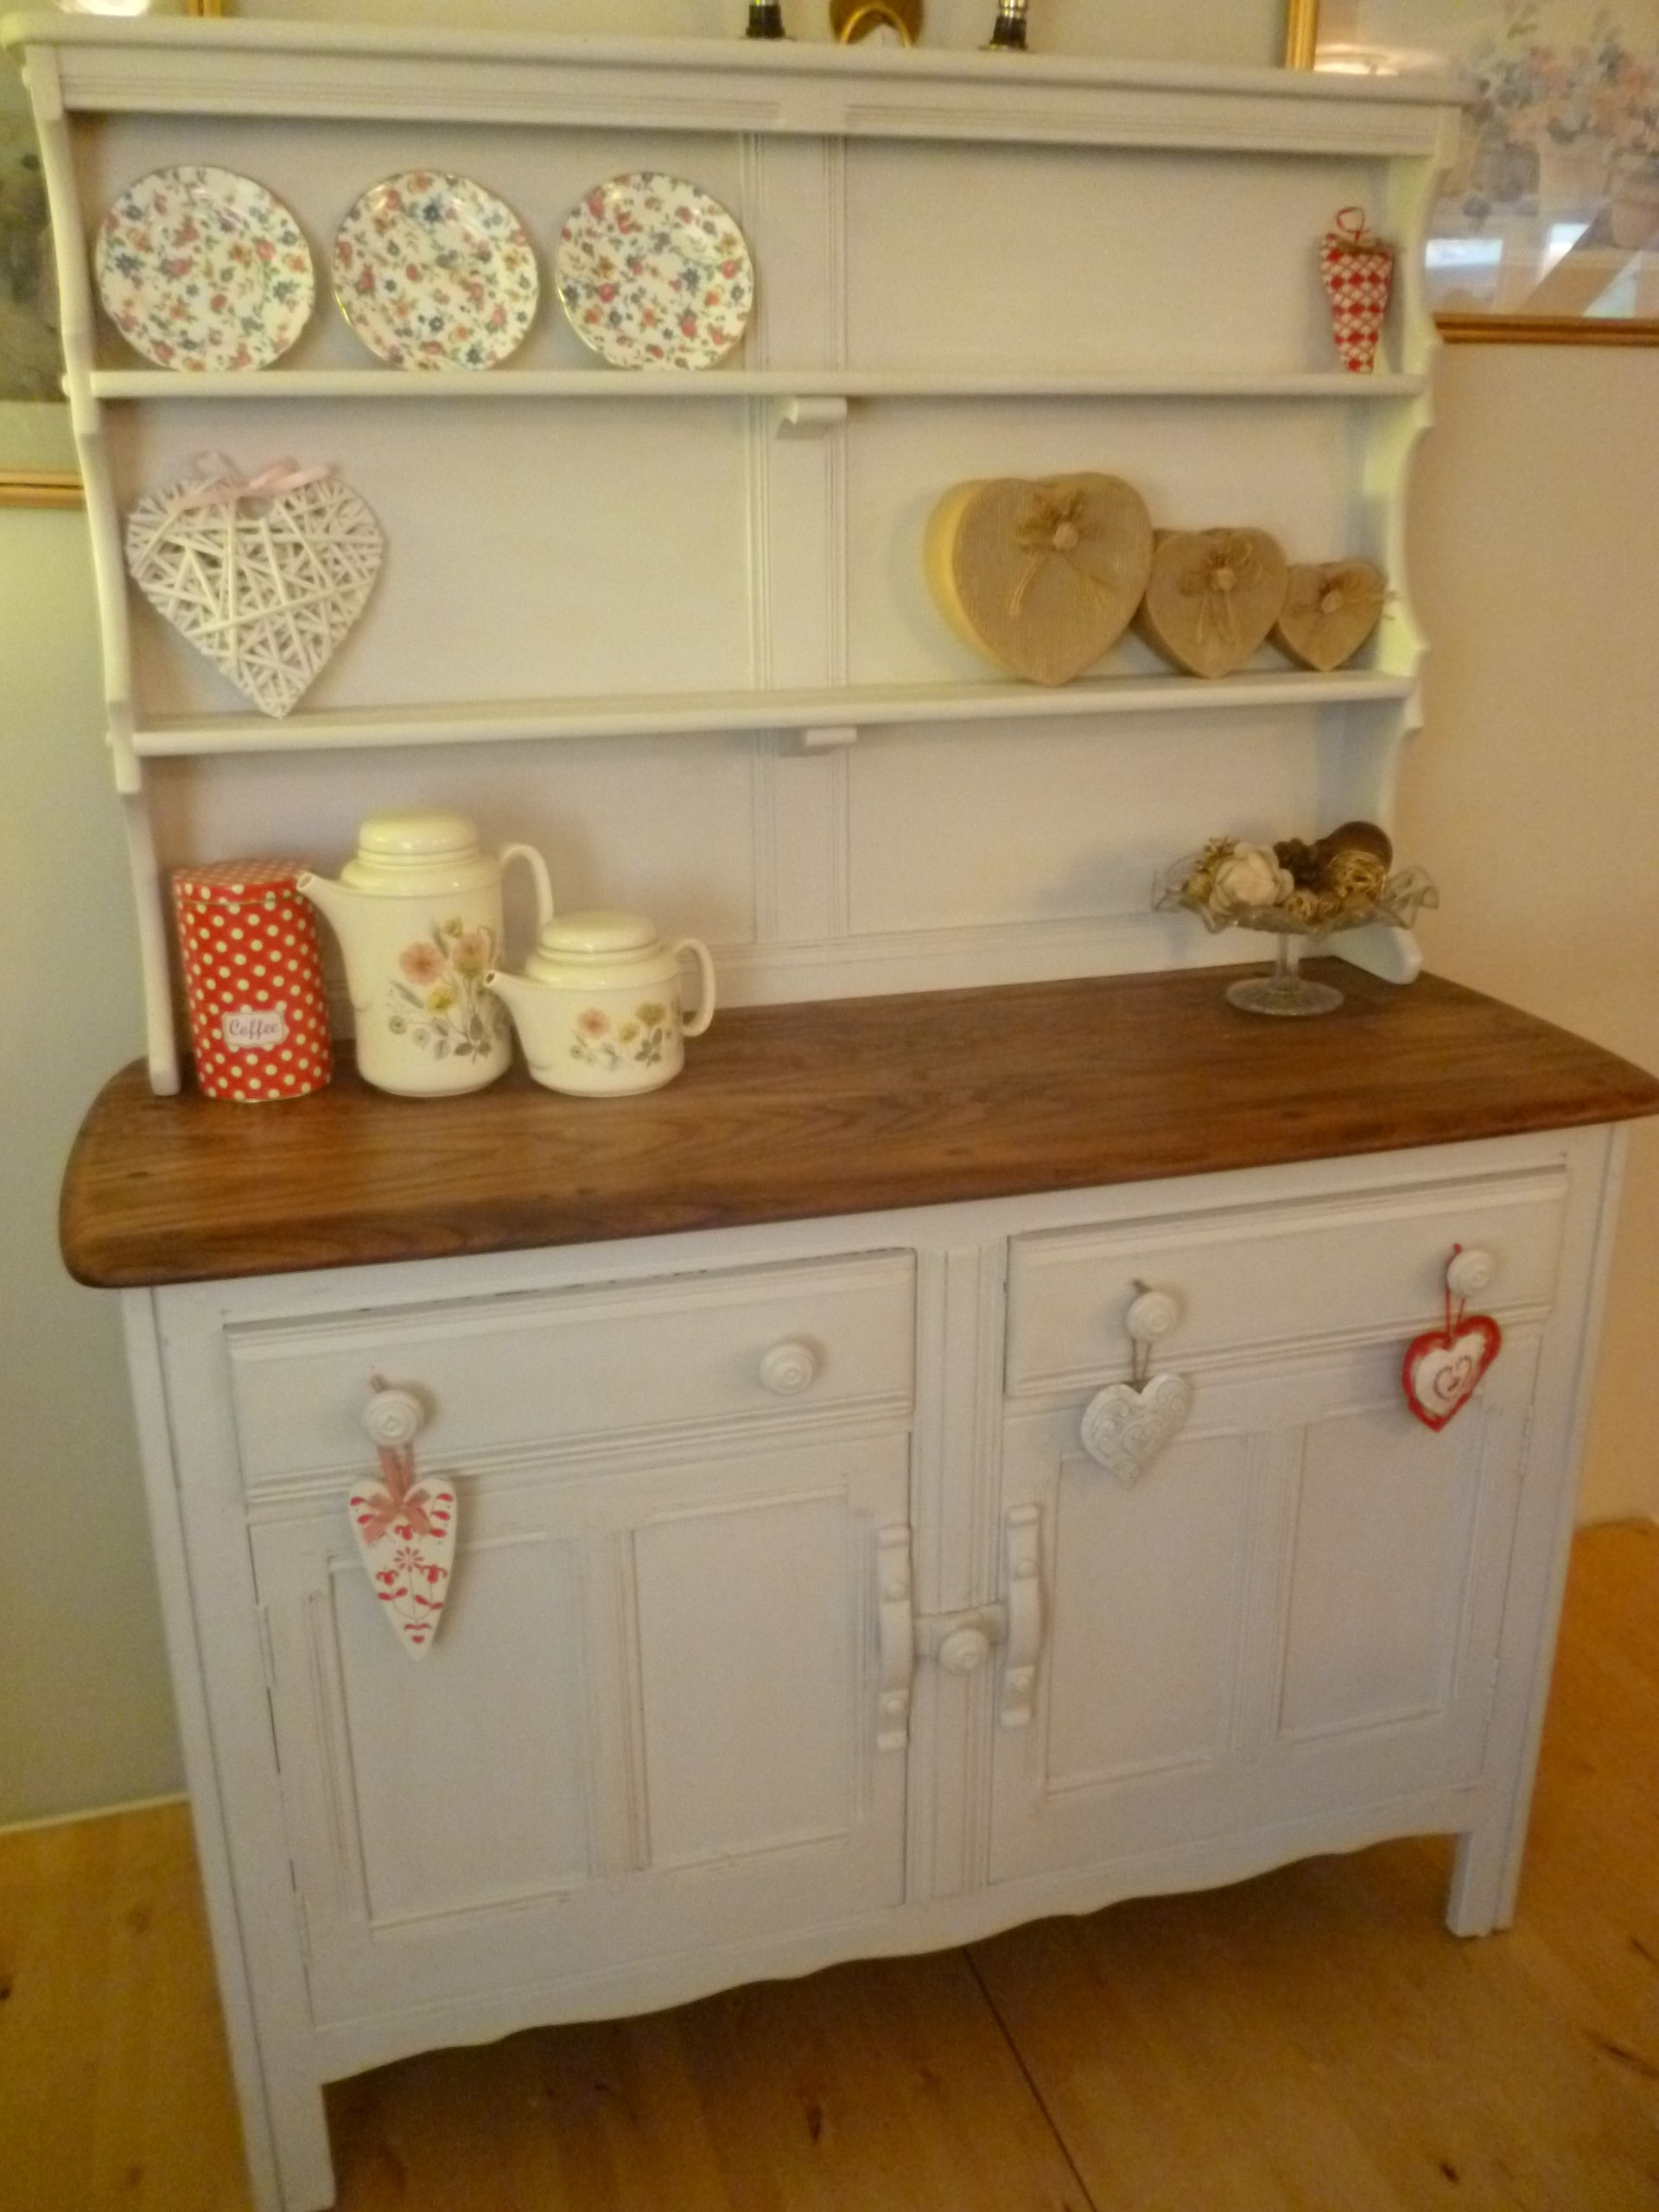 Ercol Welsh Dresser Given A Shabby Chic Faceliftrubbed Down And Painted In Farrow Balldistressed Waxed